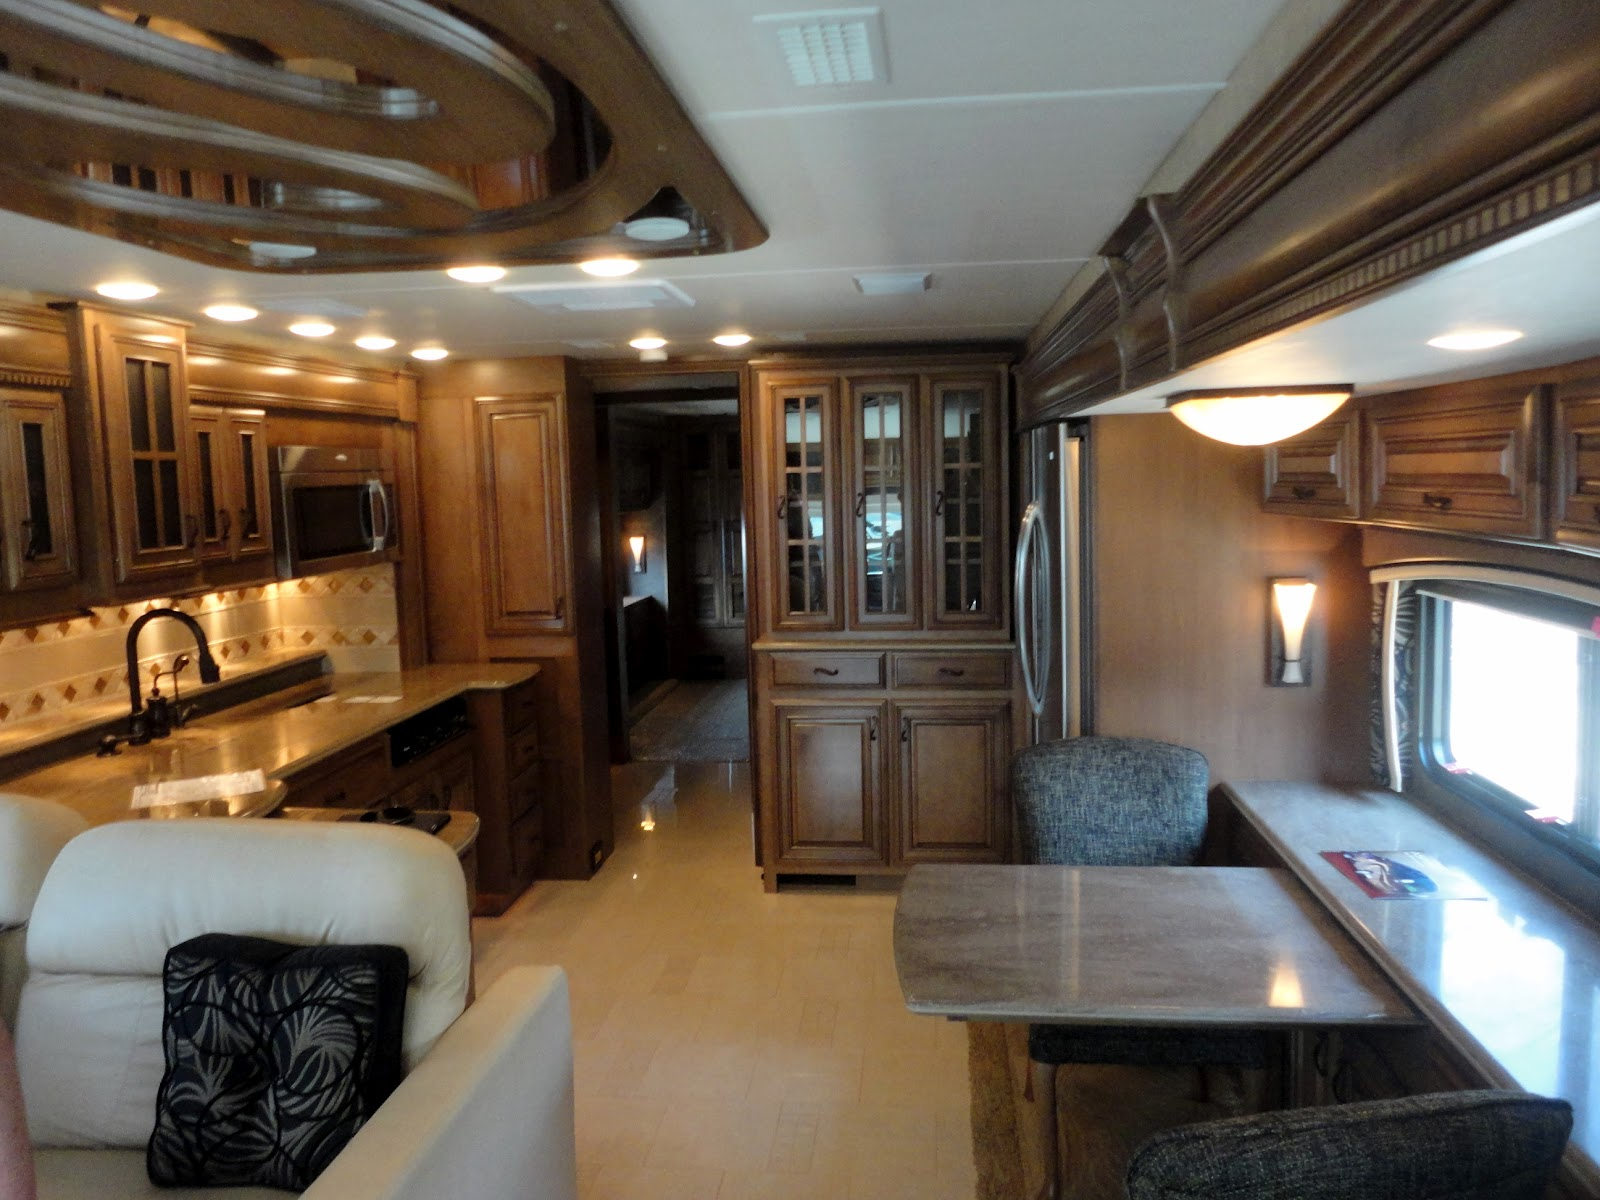 88 Nice Rv Inside  The Coolest Modern RVs Trailers And Campers Totally Nice Interiorbetter